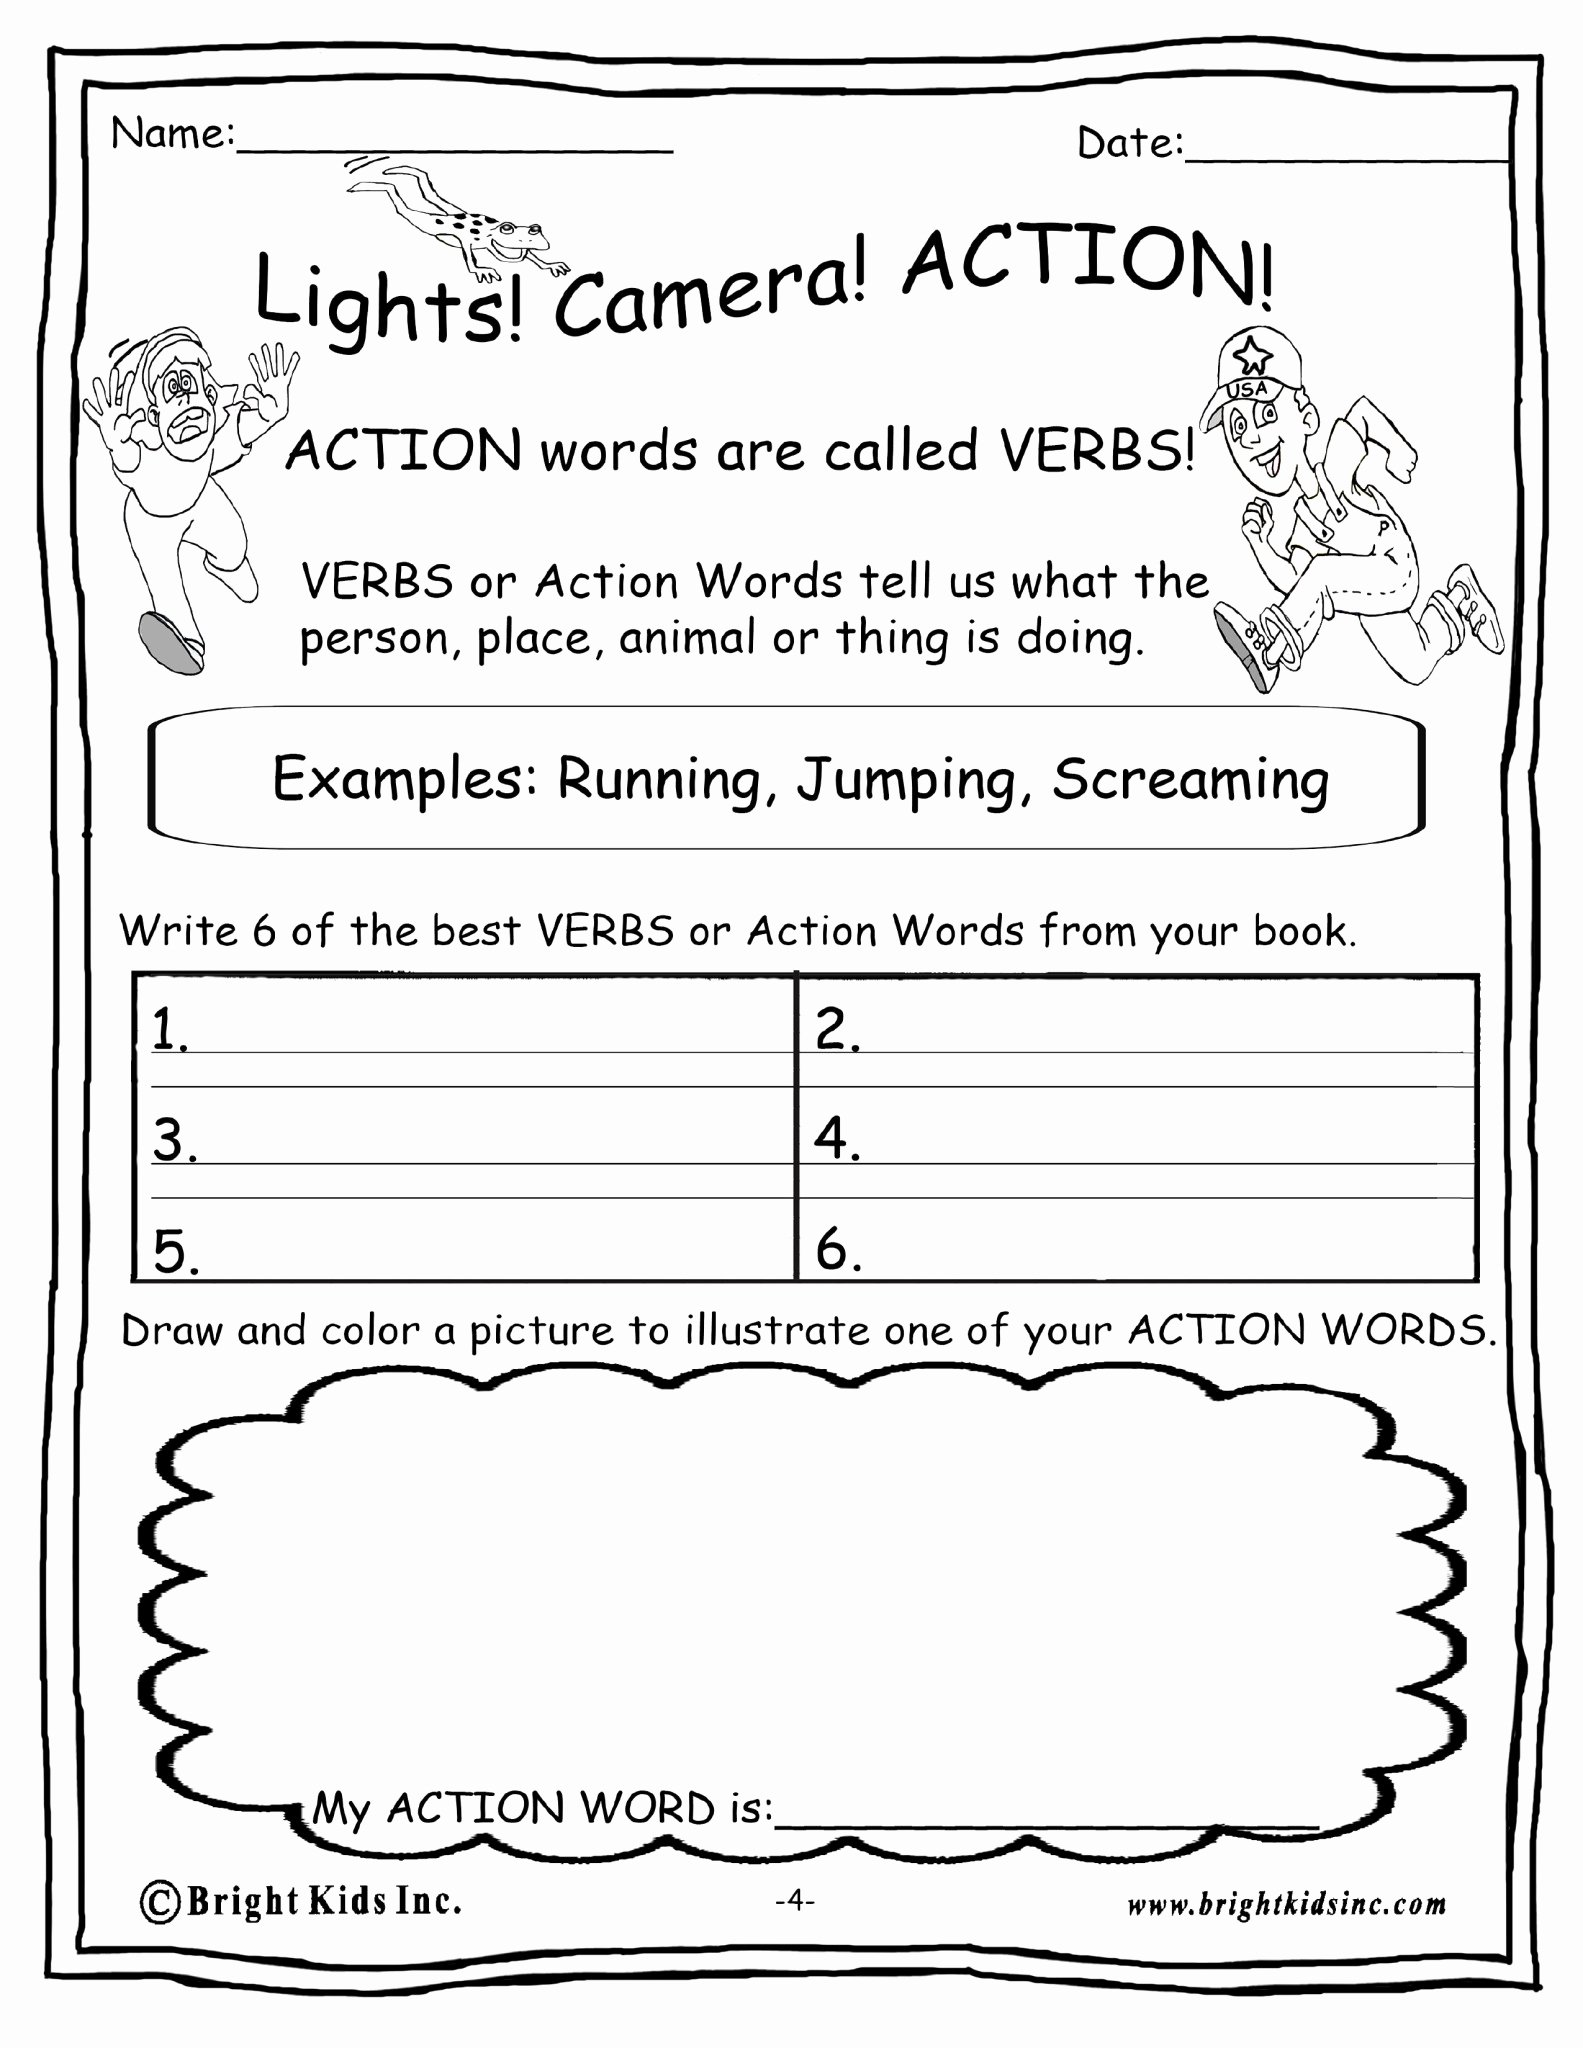 Kindergarten Book Report Template Unique Book Report Sheets for Kindergarten Writinggroup361 Web